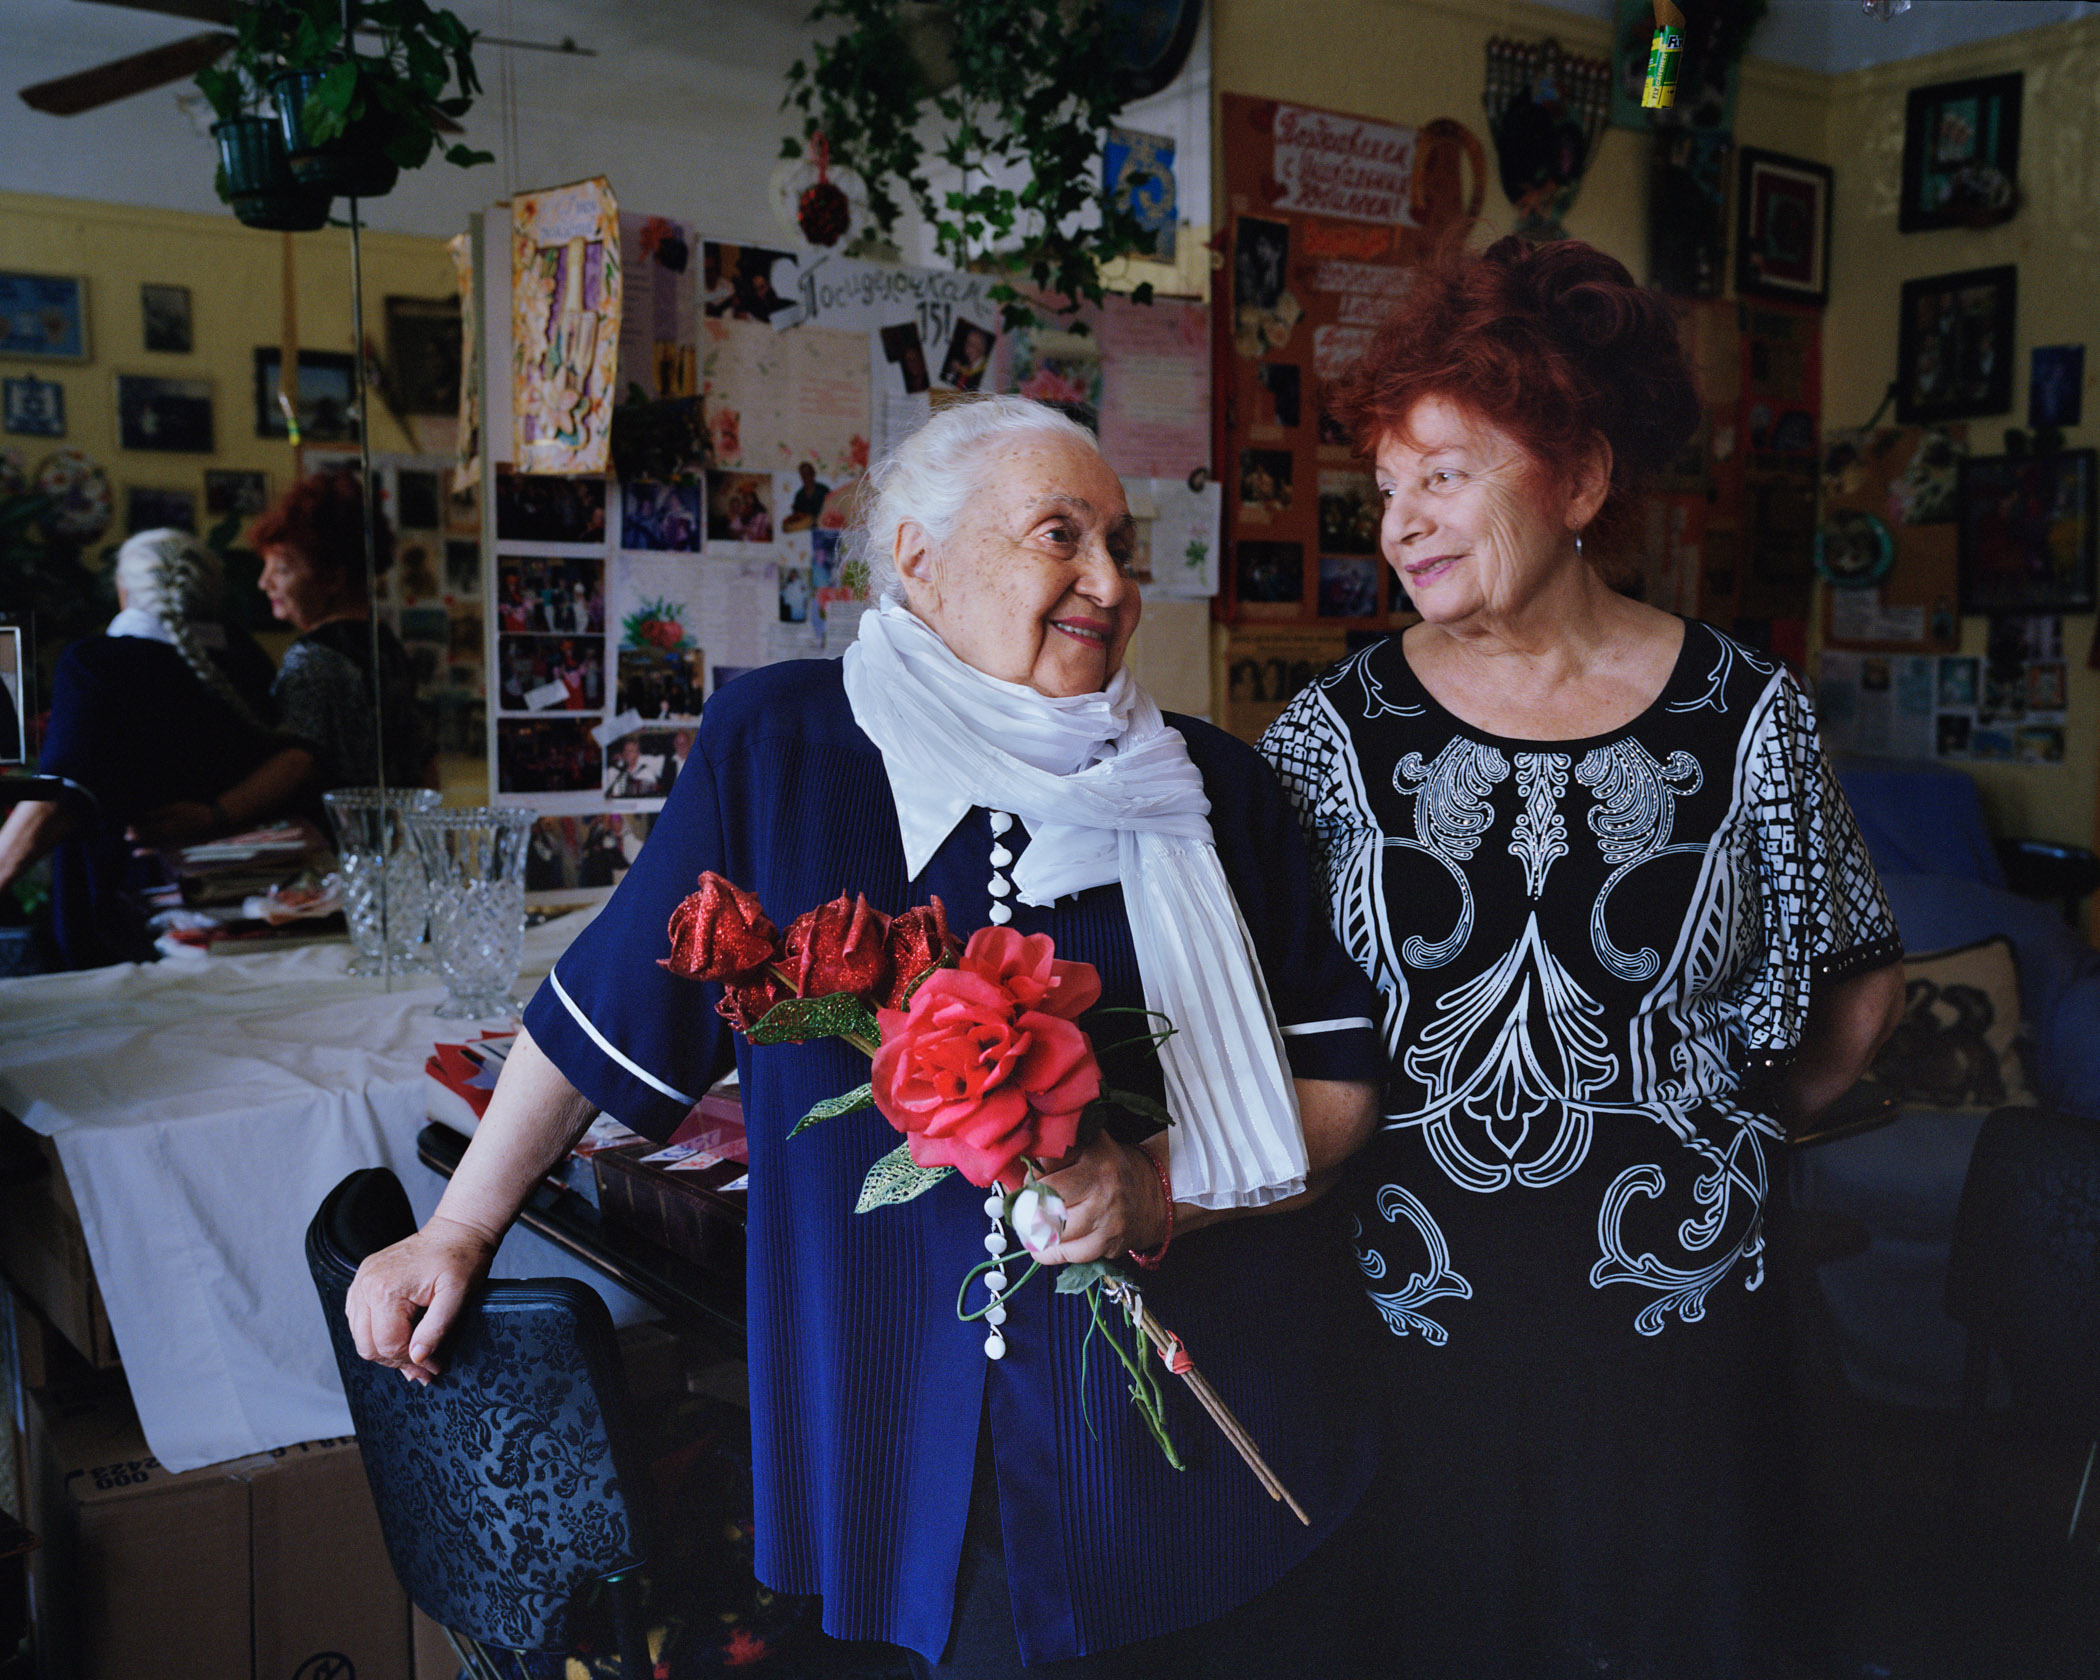 Vera Hatsernova (left)  and Anna Malkina (right), in Hatsernova's living room. Hatsernova is known for her salons and Malkina volunteers with veterans. (Photo by Alexey Yurenev/GroundTruth)